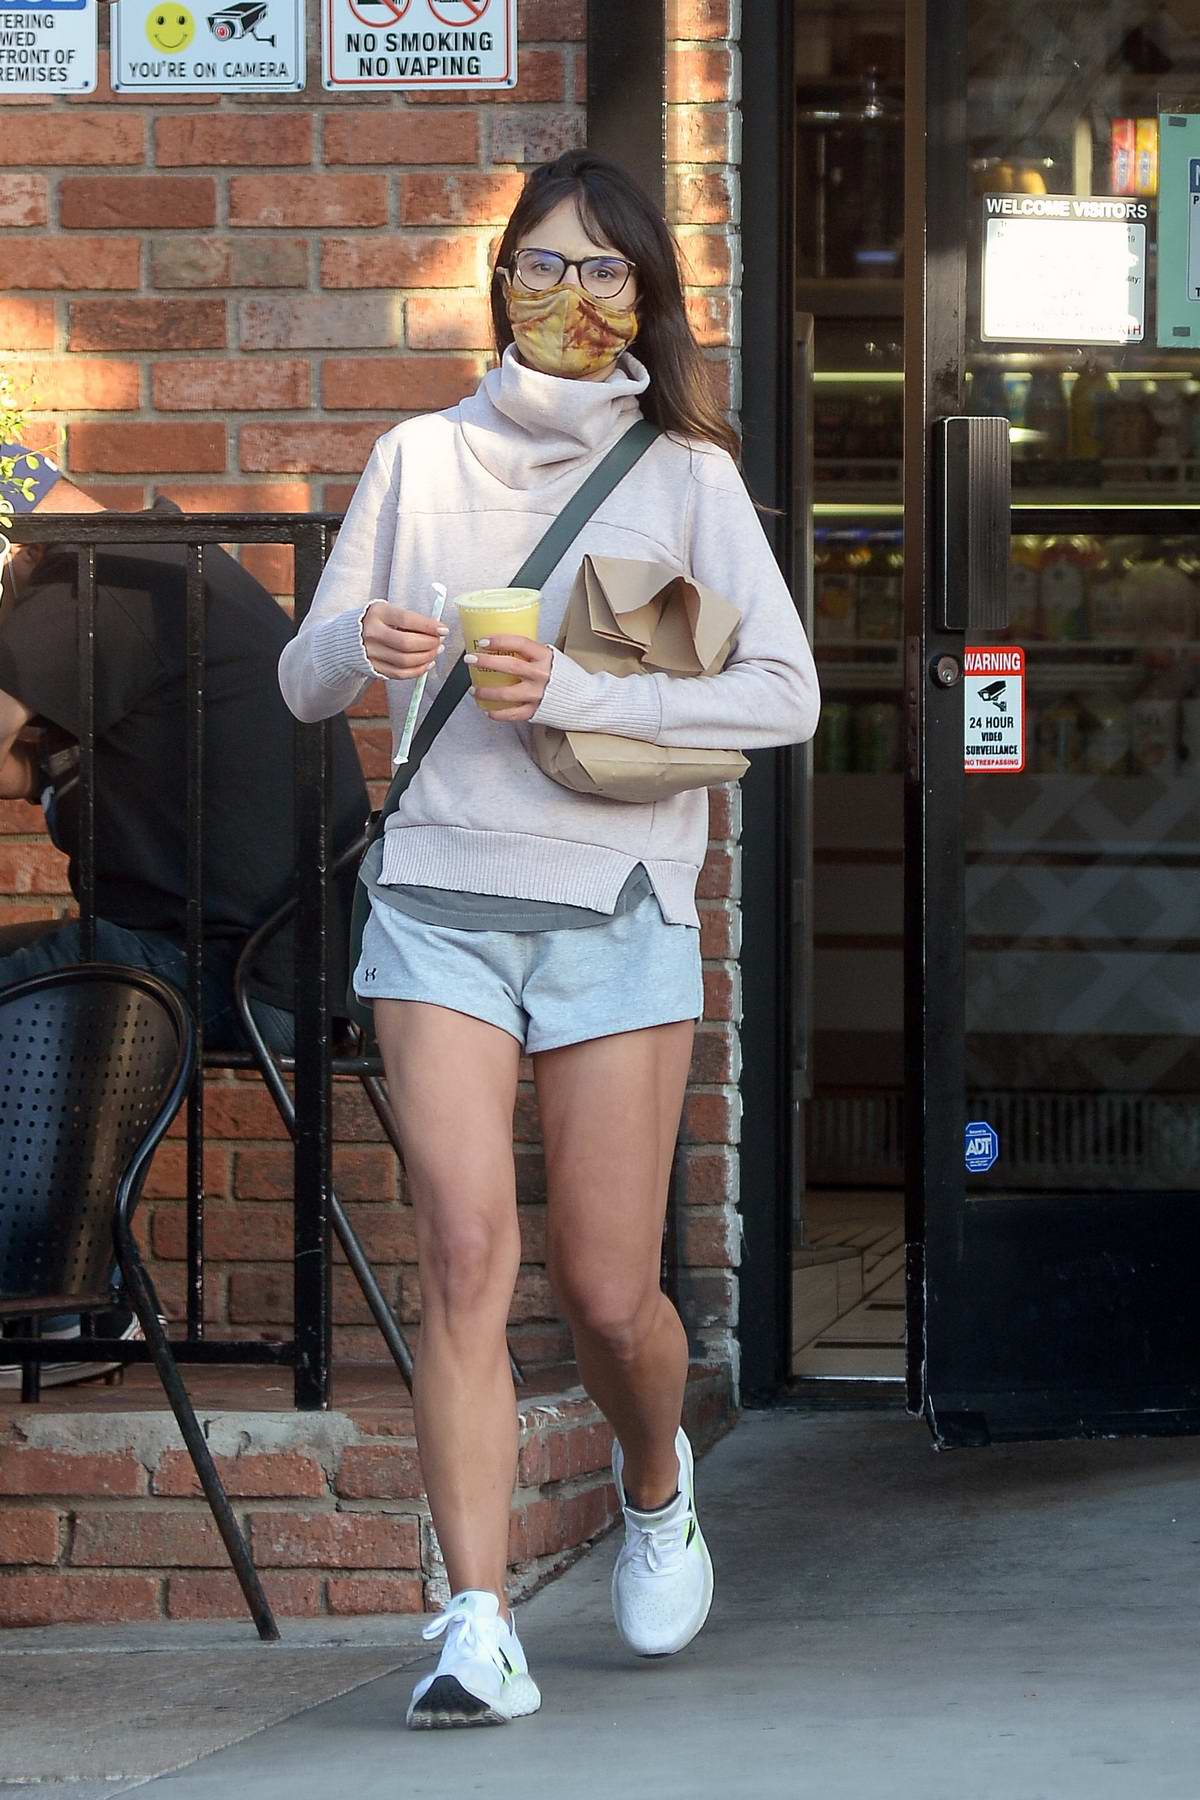 Jordana Brewster flashes her toned legs in shorts while out to pick some snacks in Los Angeles